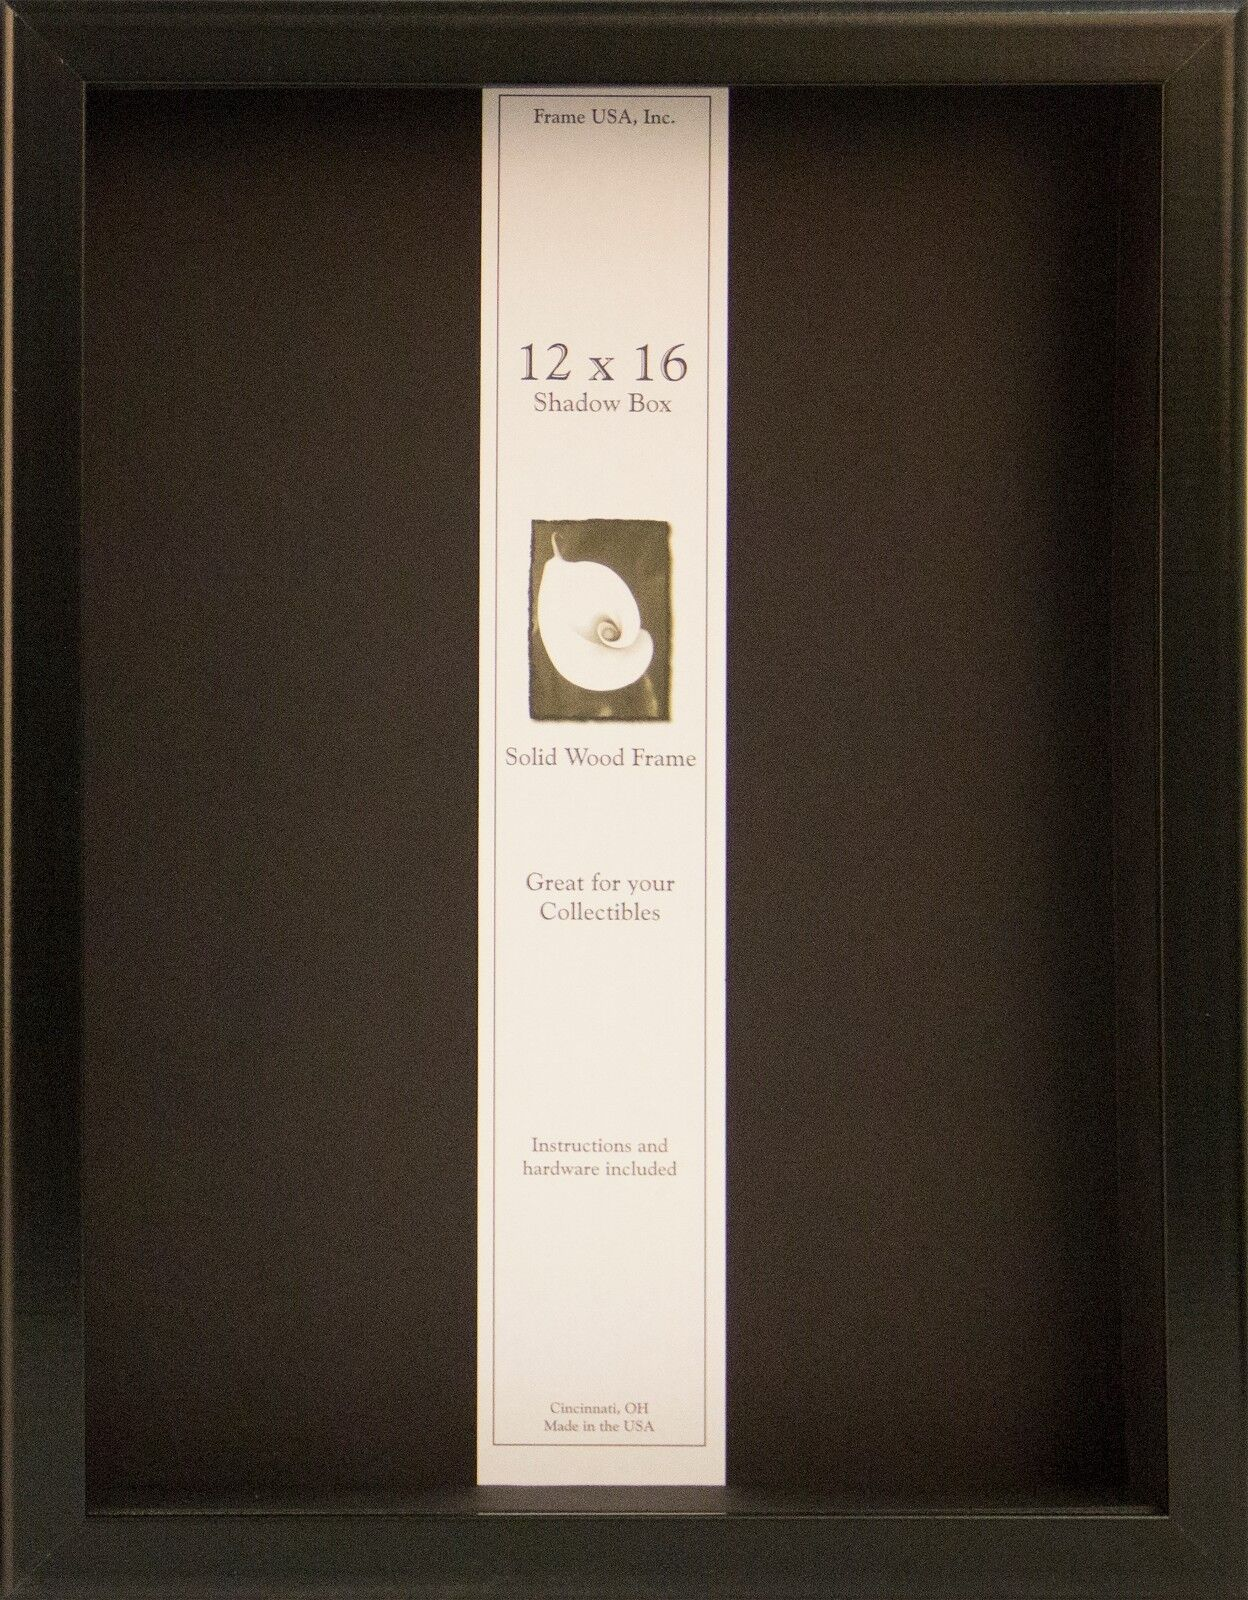 Frame USA 12x16 Shadow Box Showcase Picture Frame Availab...